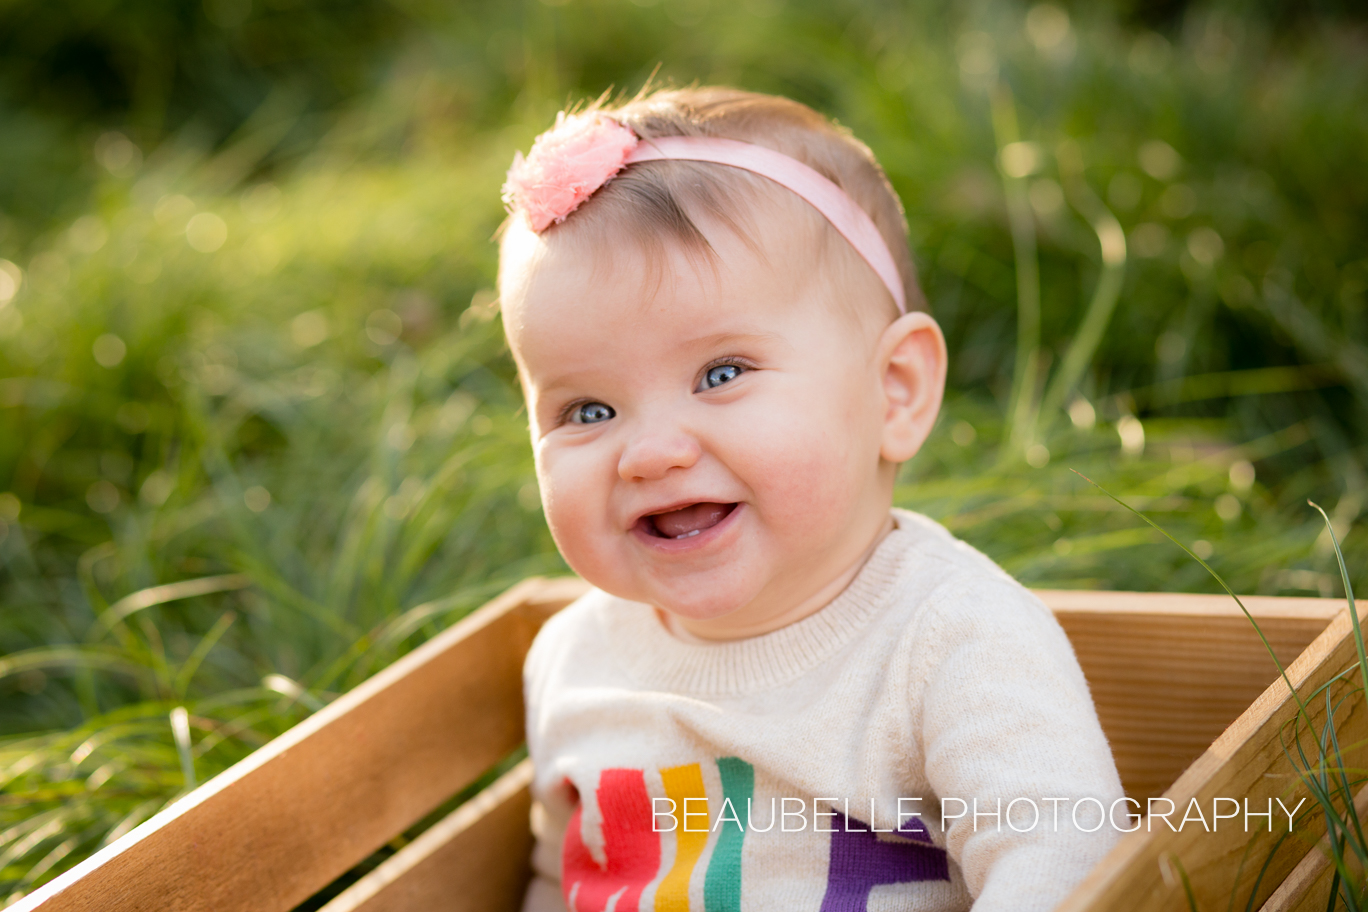 Beaubelle Photography Orange County Children Photography